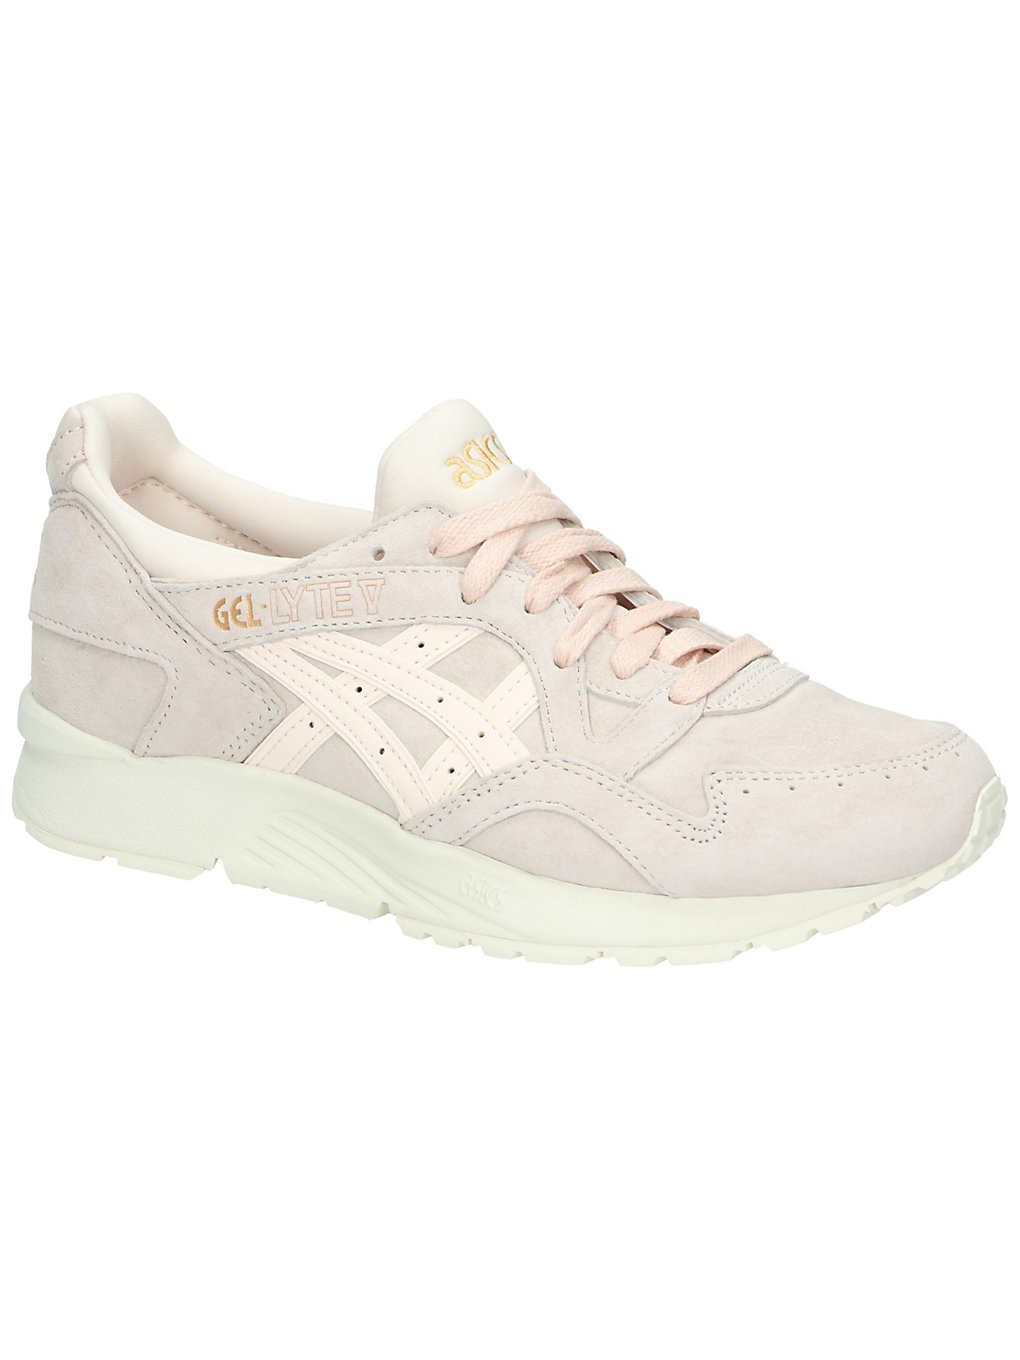 Image of Asics Gel-Lyte V Sneakers Women